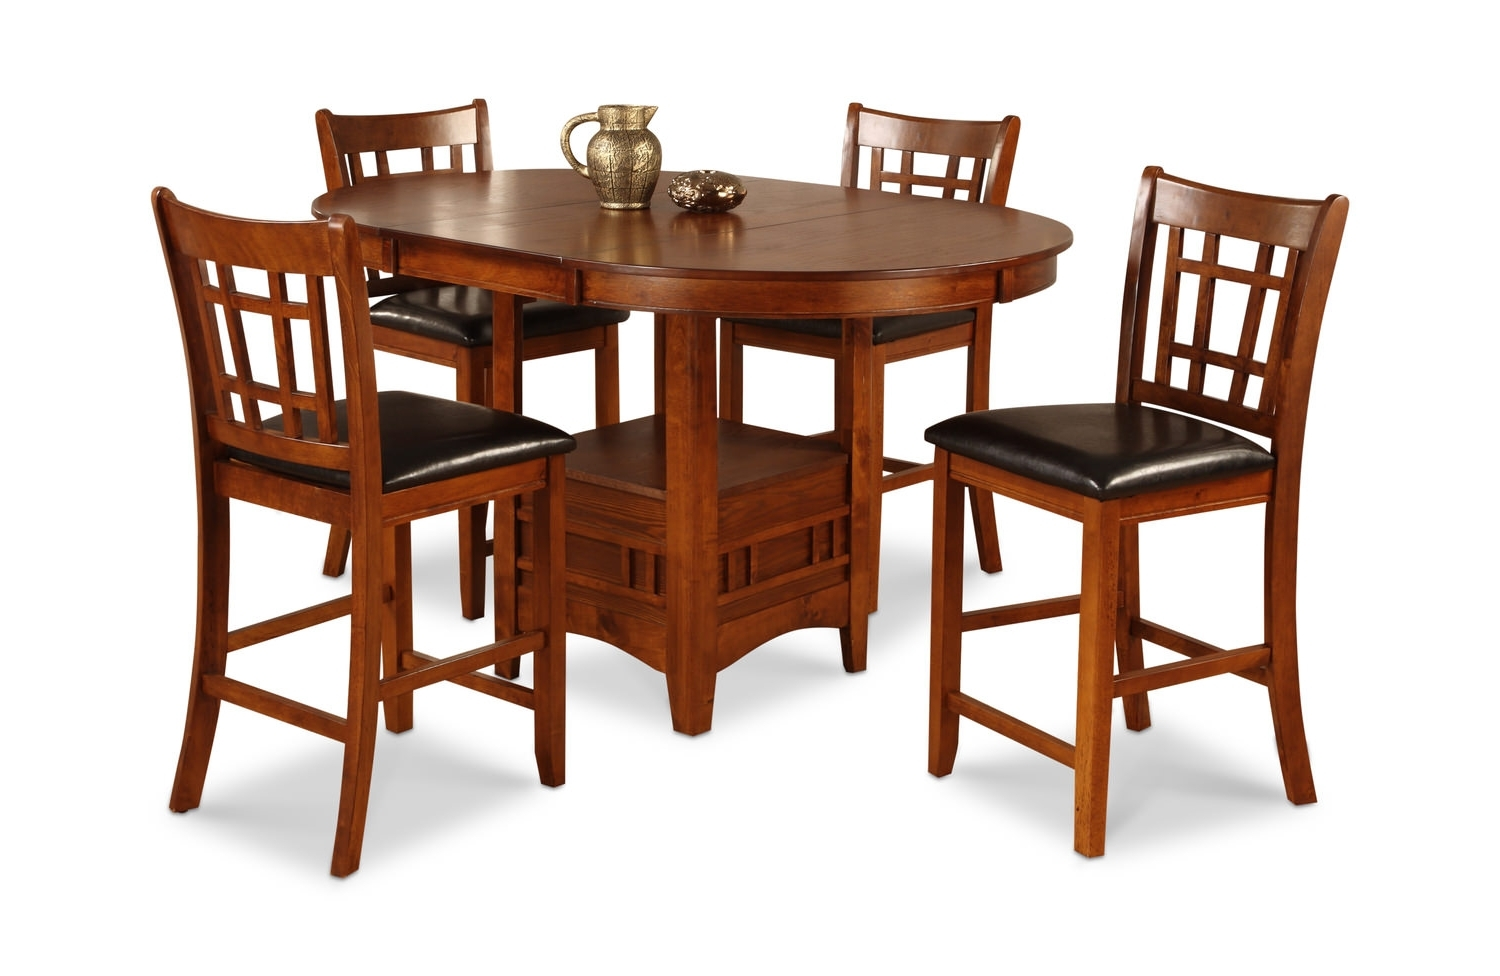 Chapleau Ii 7 Piece Extension Dining Table Sets Pertaining To Most Up To Date Dining Sets – Kitchen & Dining Room Sets – Hom Furniture (View 10 of 25)